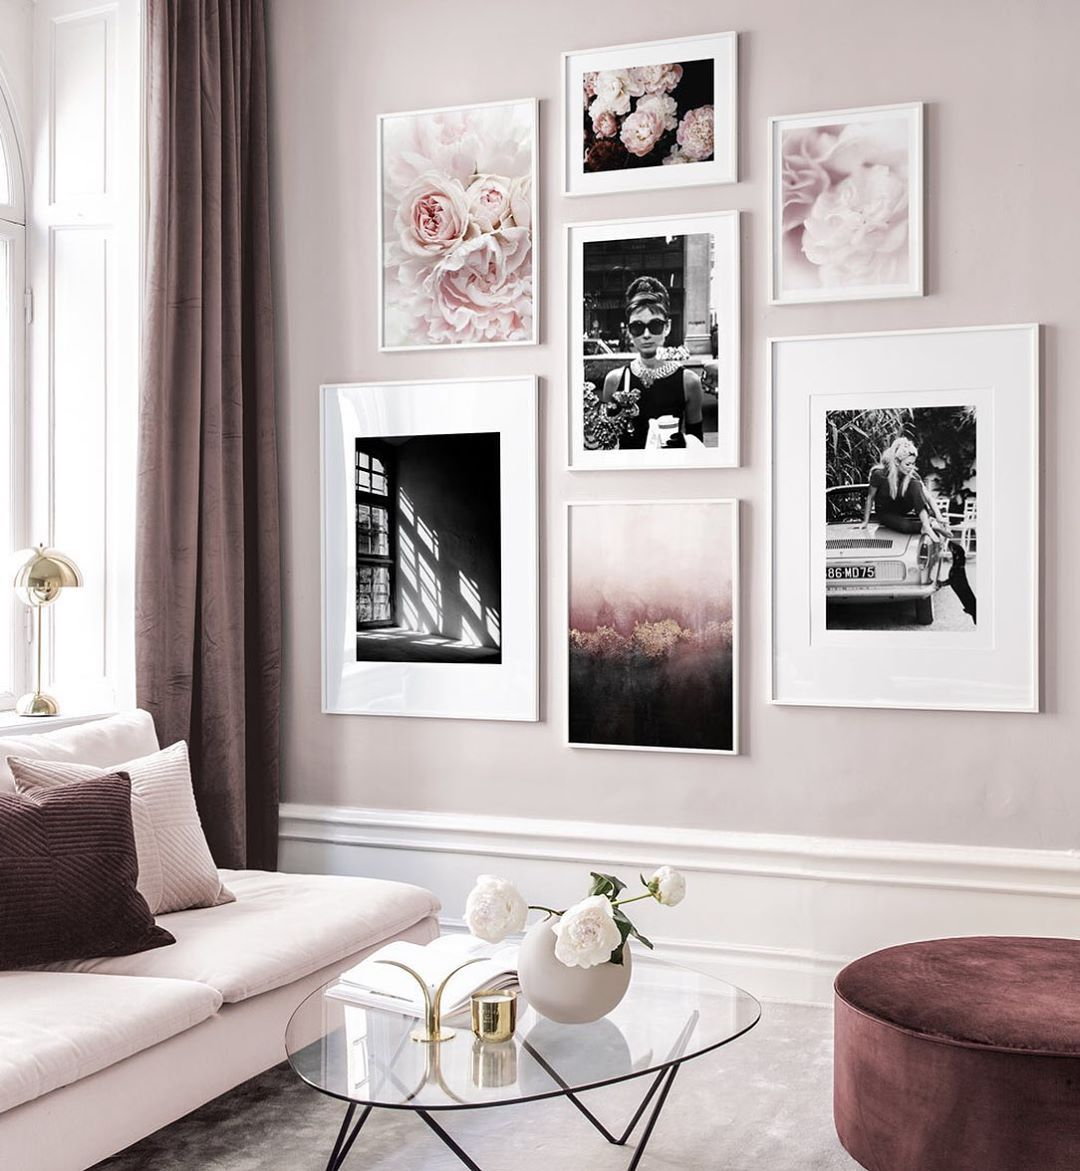 Home Is Where The Art Is From Lef Interior Design Bedroom Gallery Wall Inspiration Gallery Wall Living Room